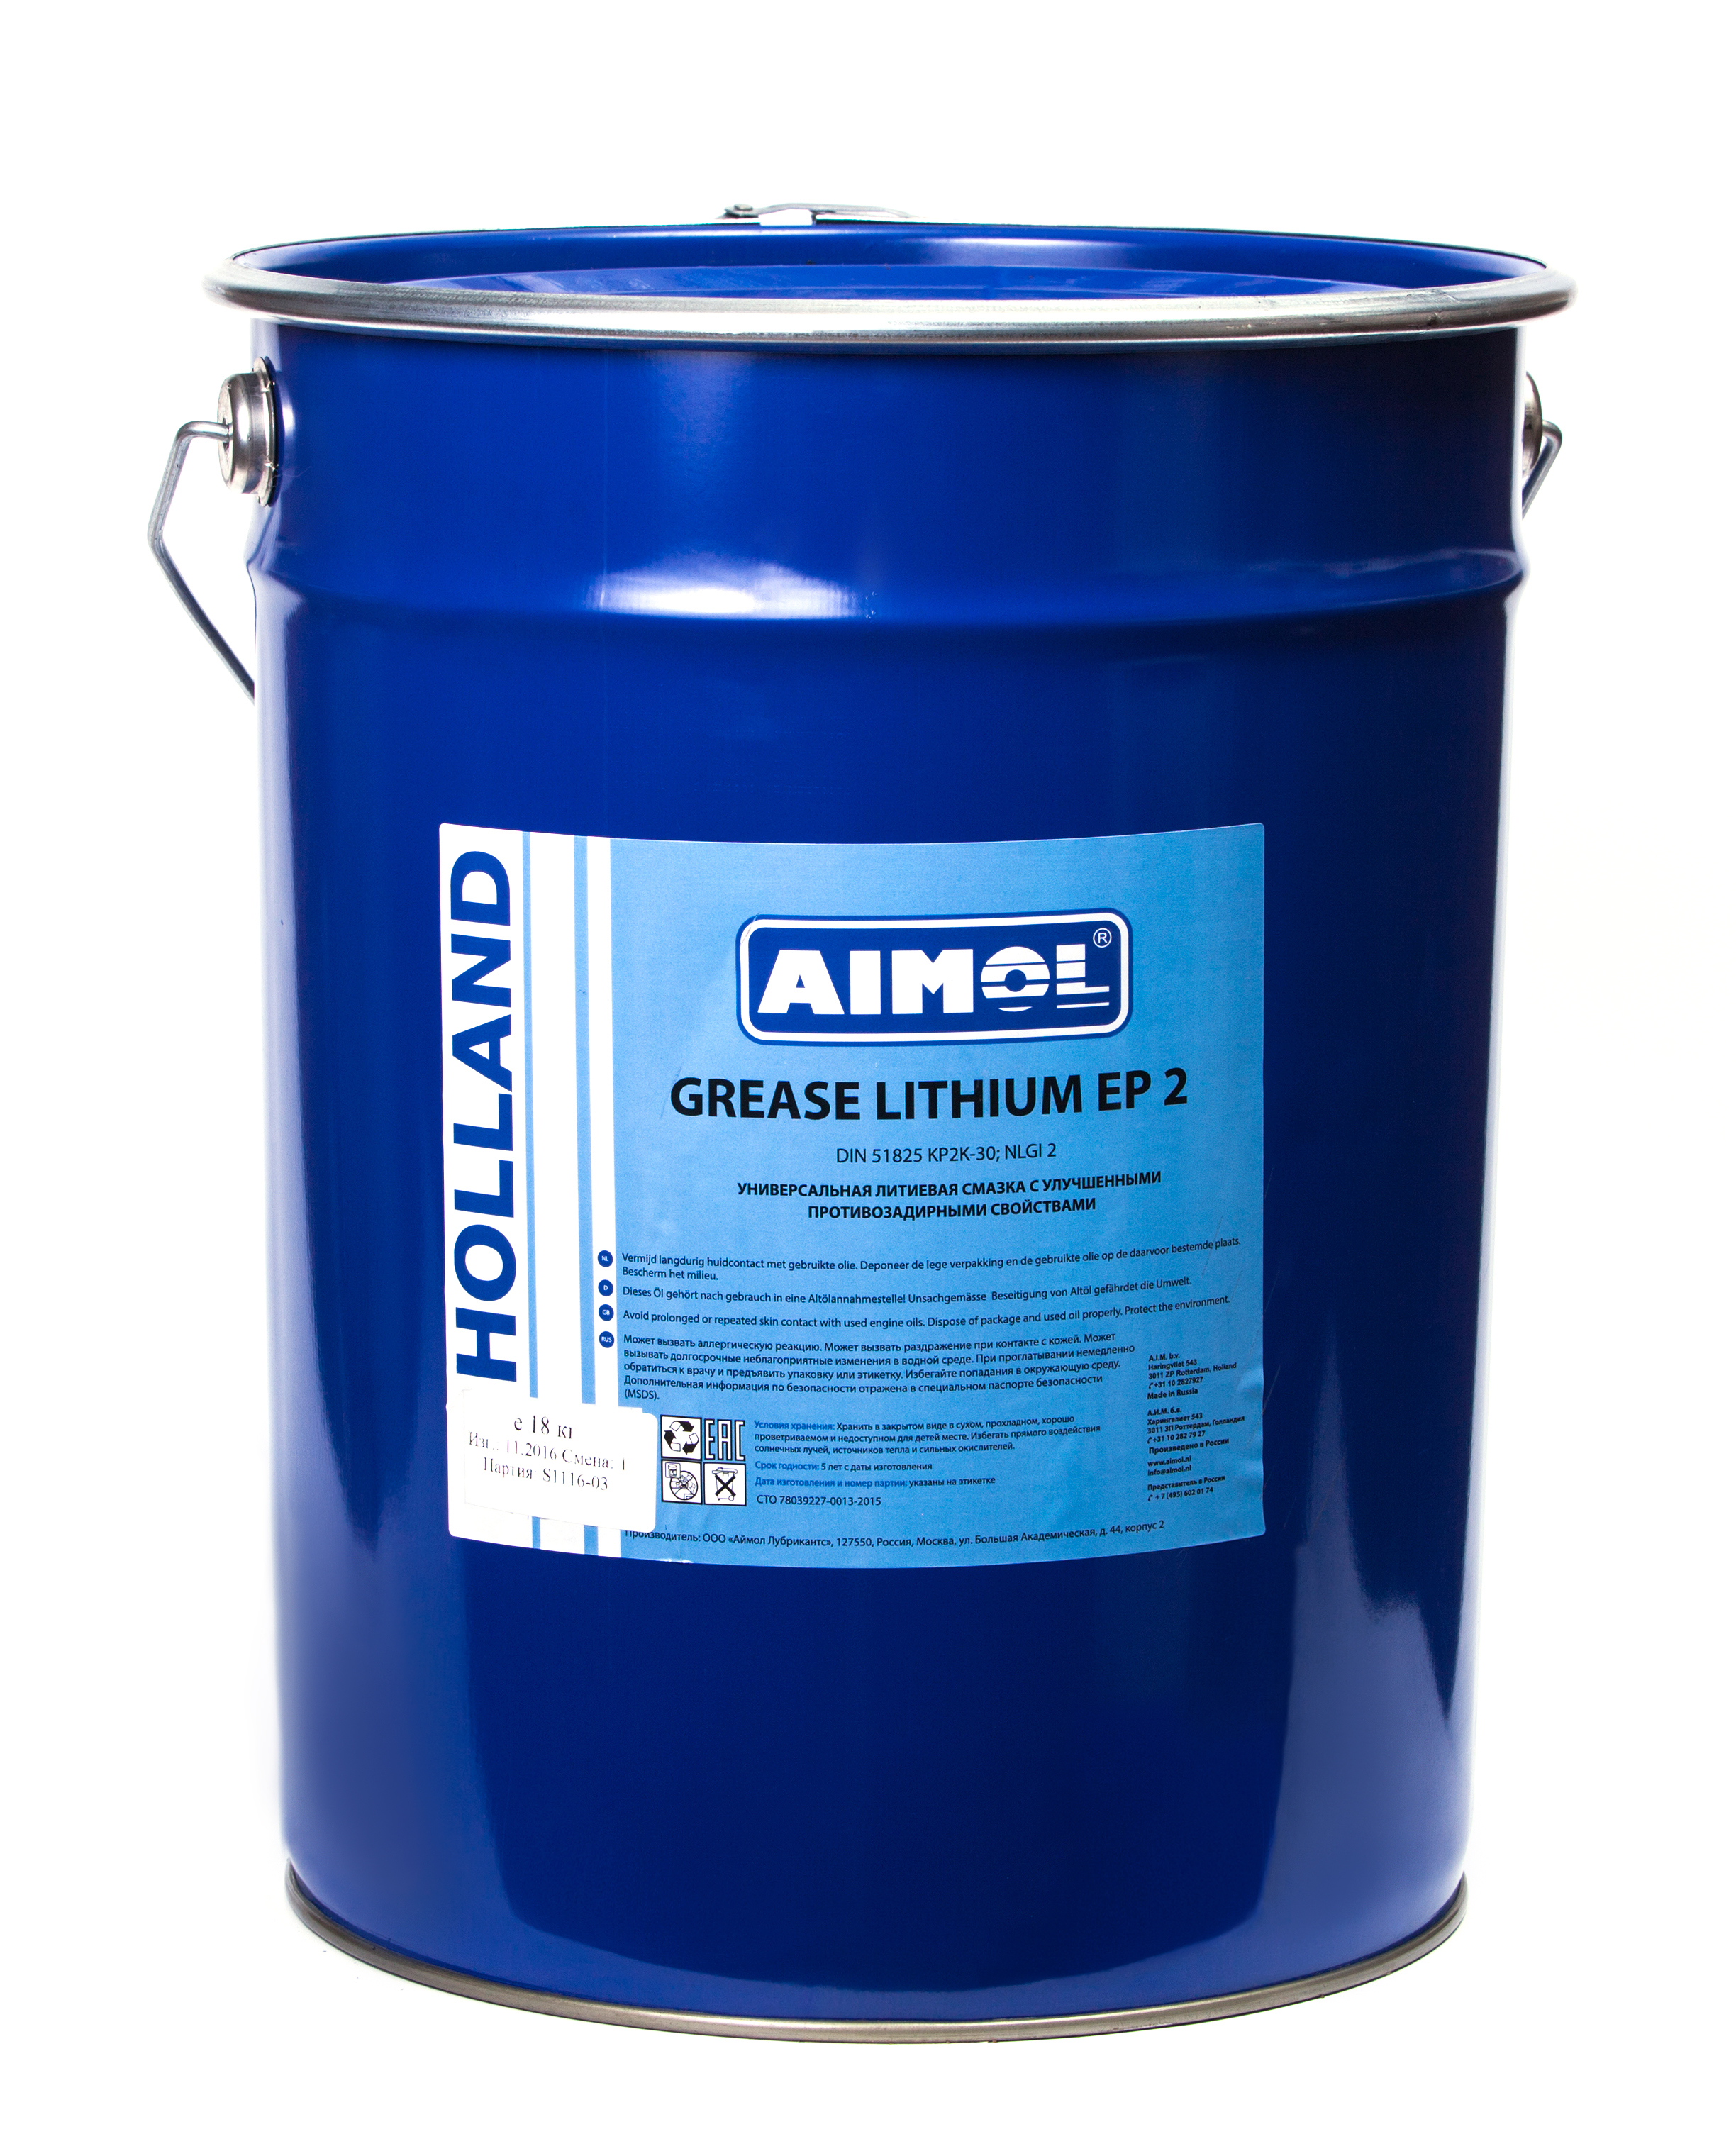 AIMOL Paste Silicon